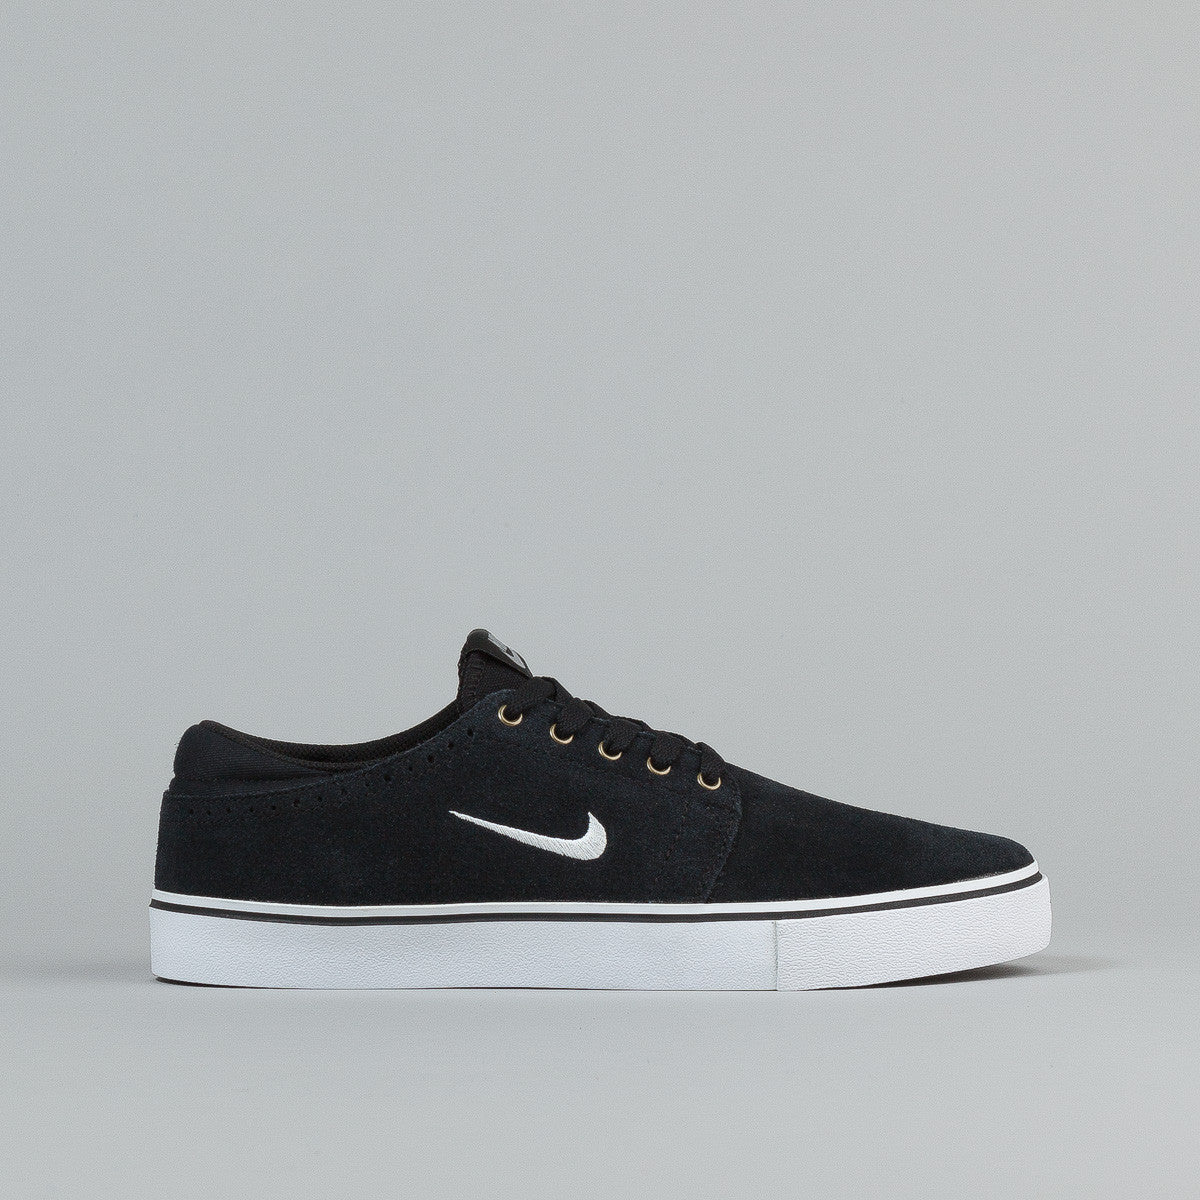 Nike SB Team Edition 2 Black / Swan